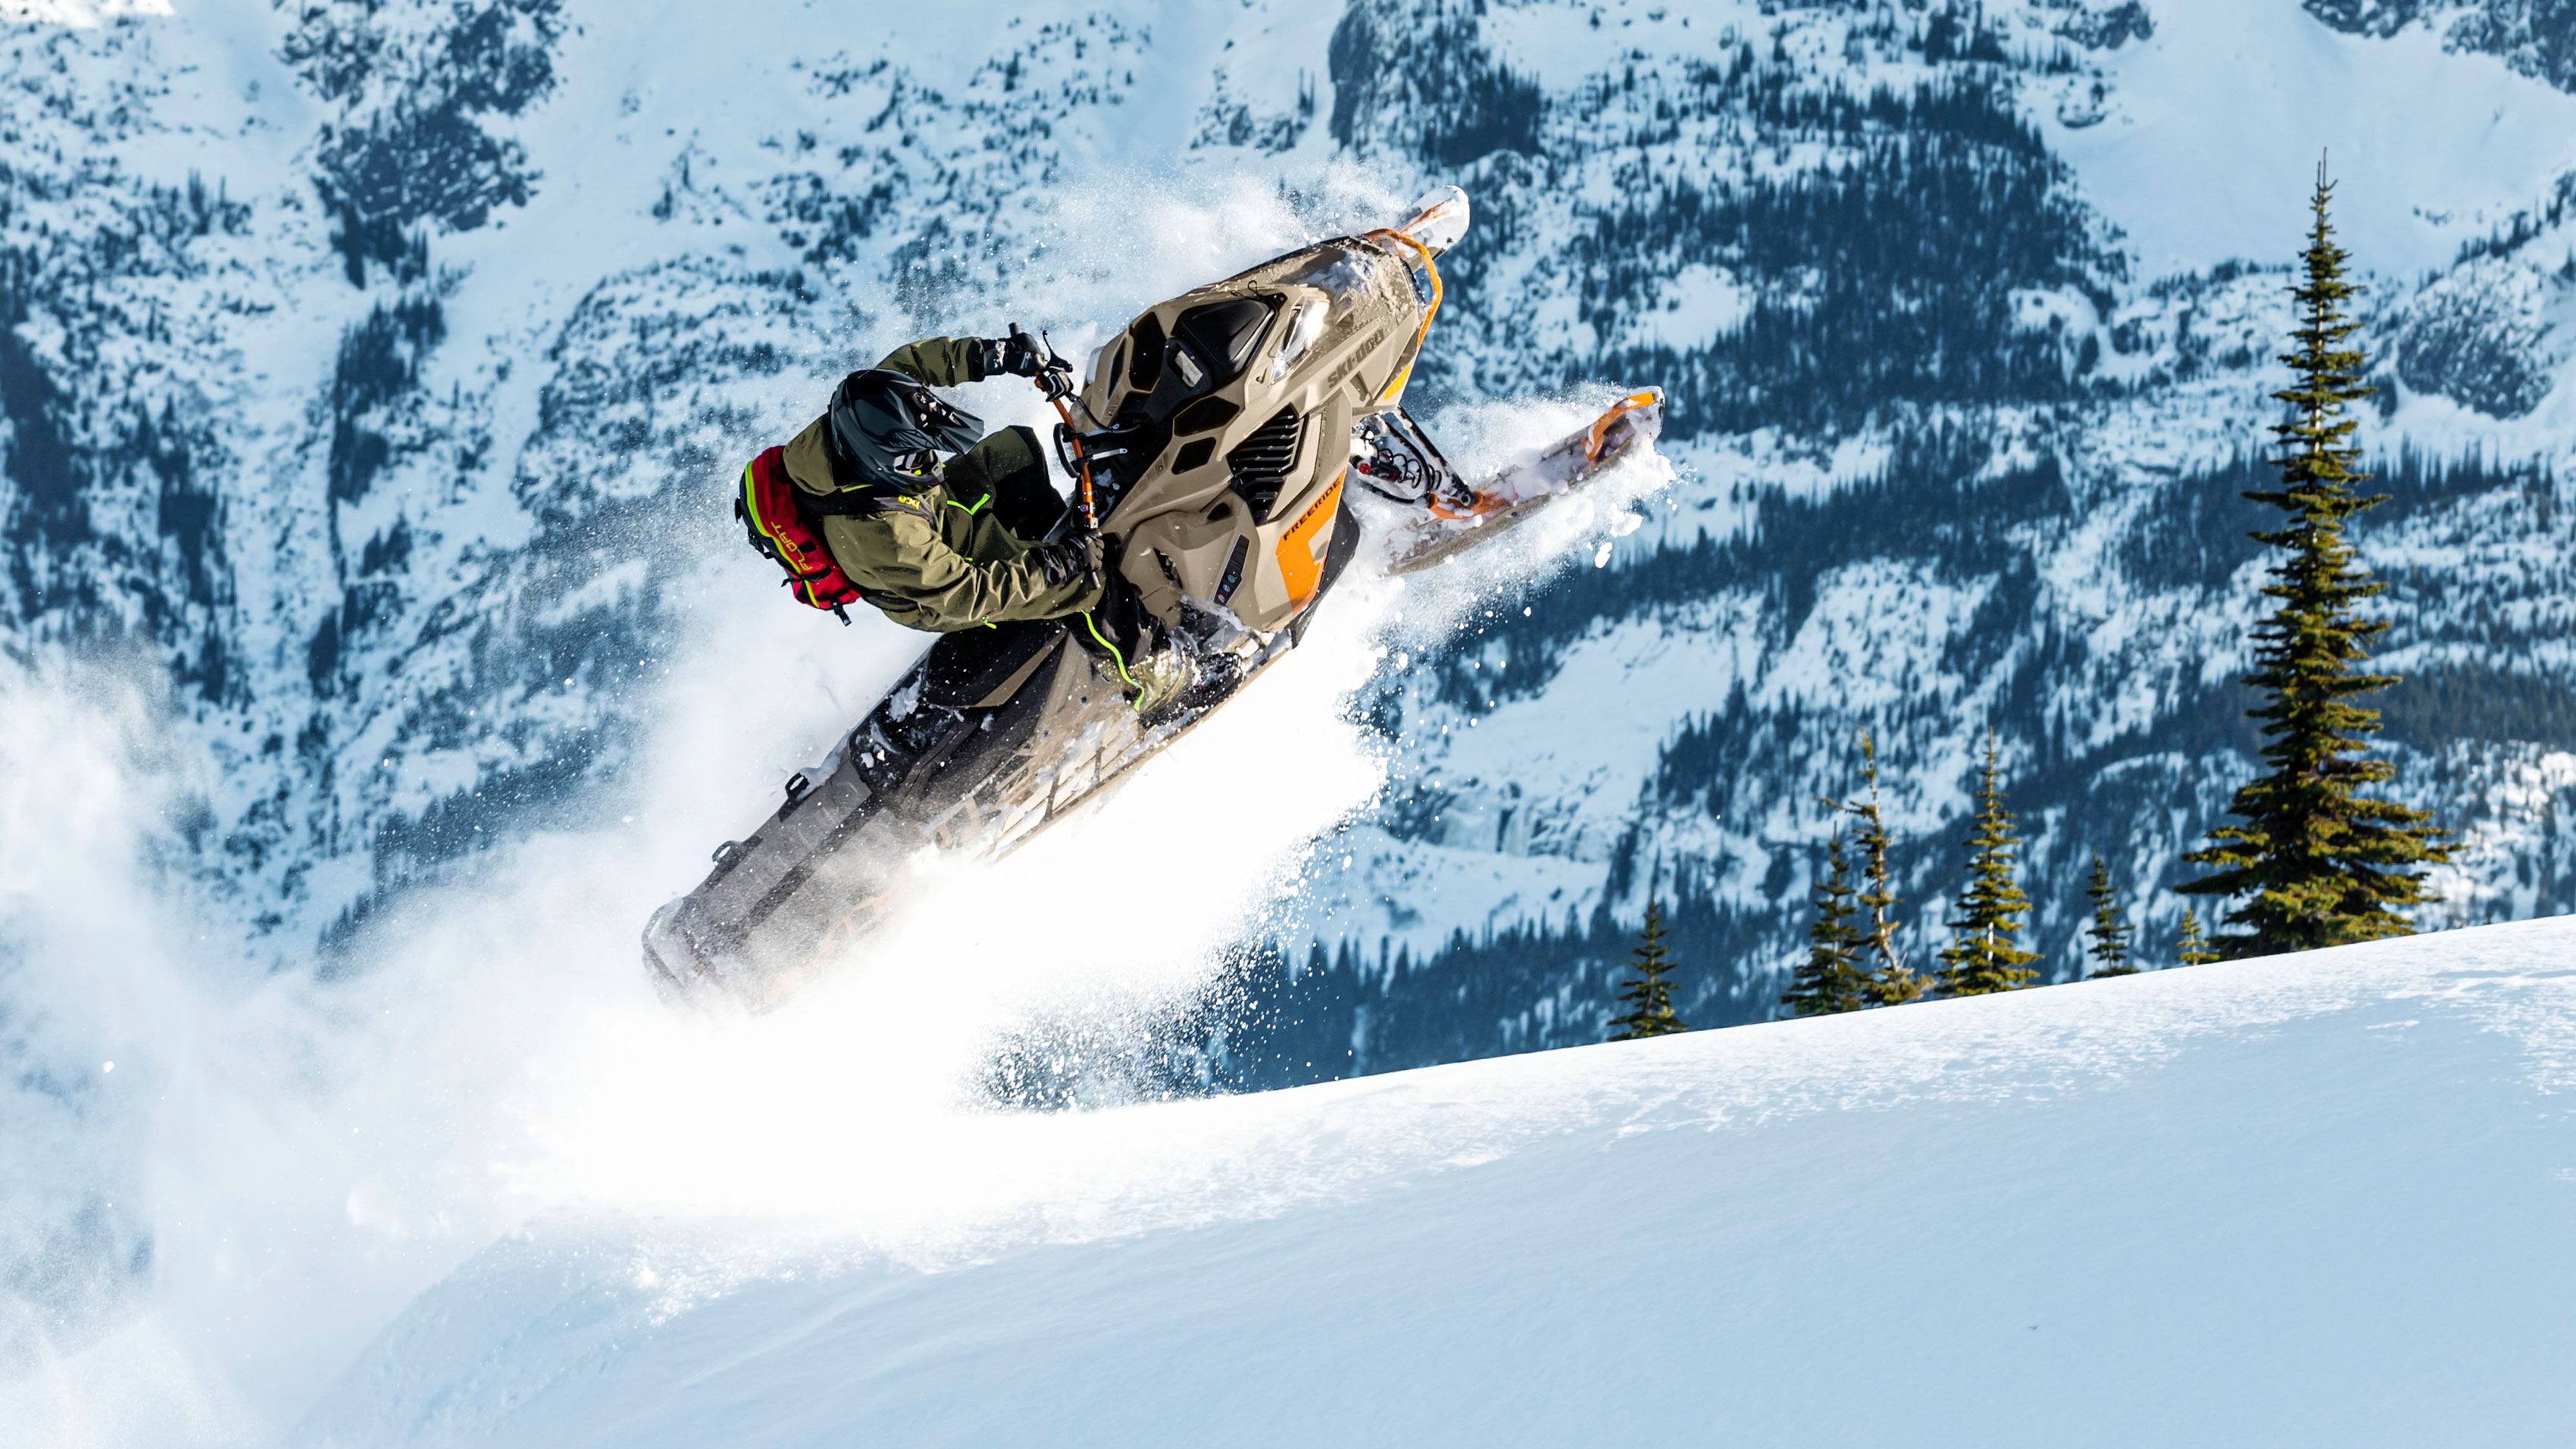 Rider jumping in deep powder with Ski-Doo Freeride